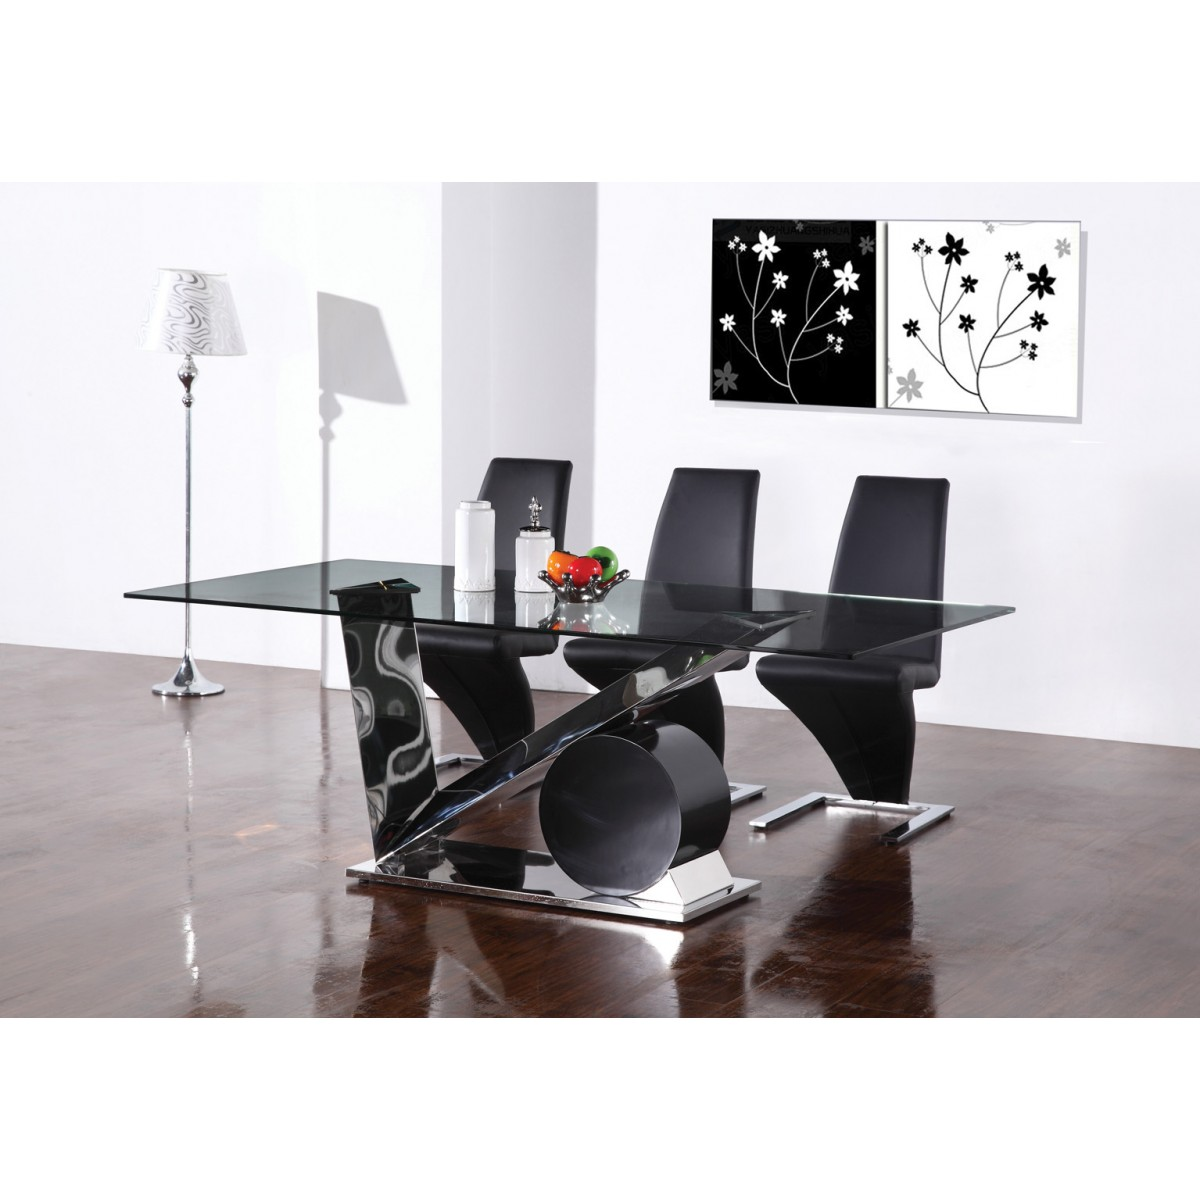 formidable set de table pour table en verre 4 table salle manger inox verre valdiz. Black Bedroom Furniture Sets. Home Design Ideas